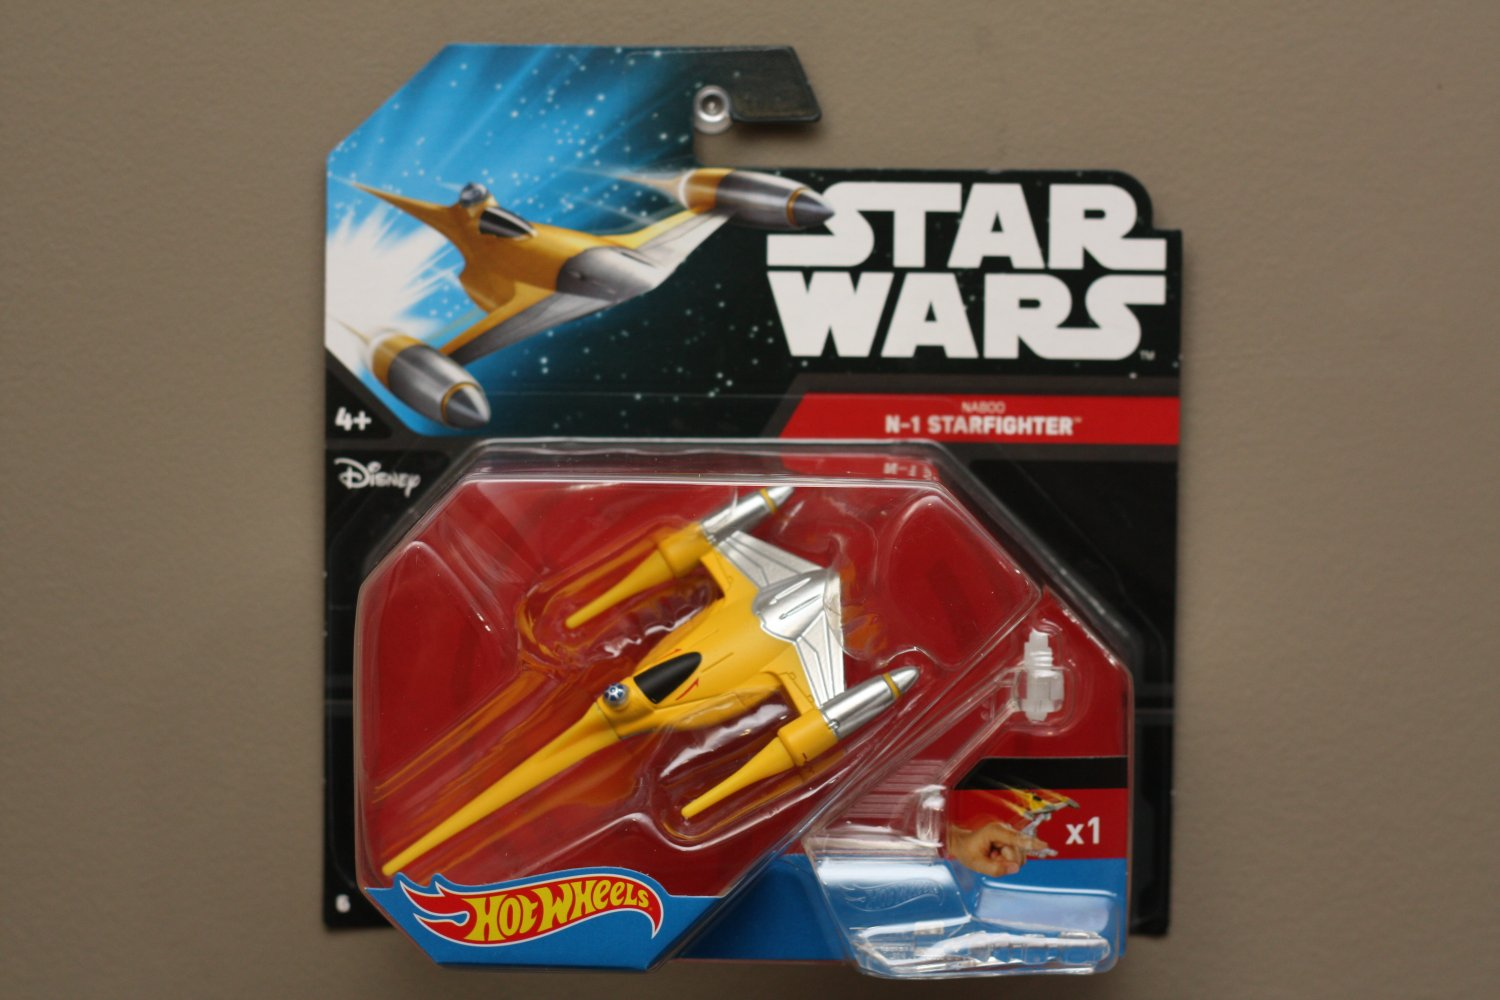 hot wheels 2015 star wars ships naboo n 1 starfighter. Black Bedroom Furniture Sets. Home Design Ideas